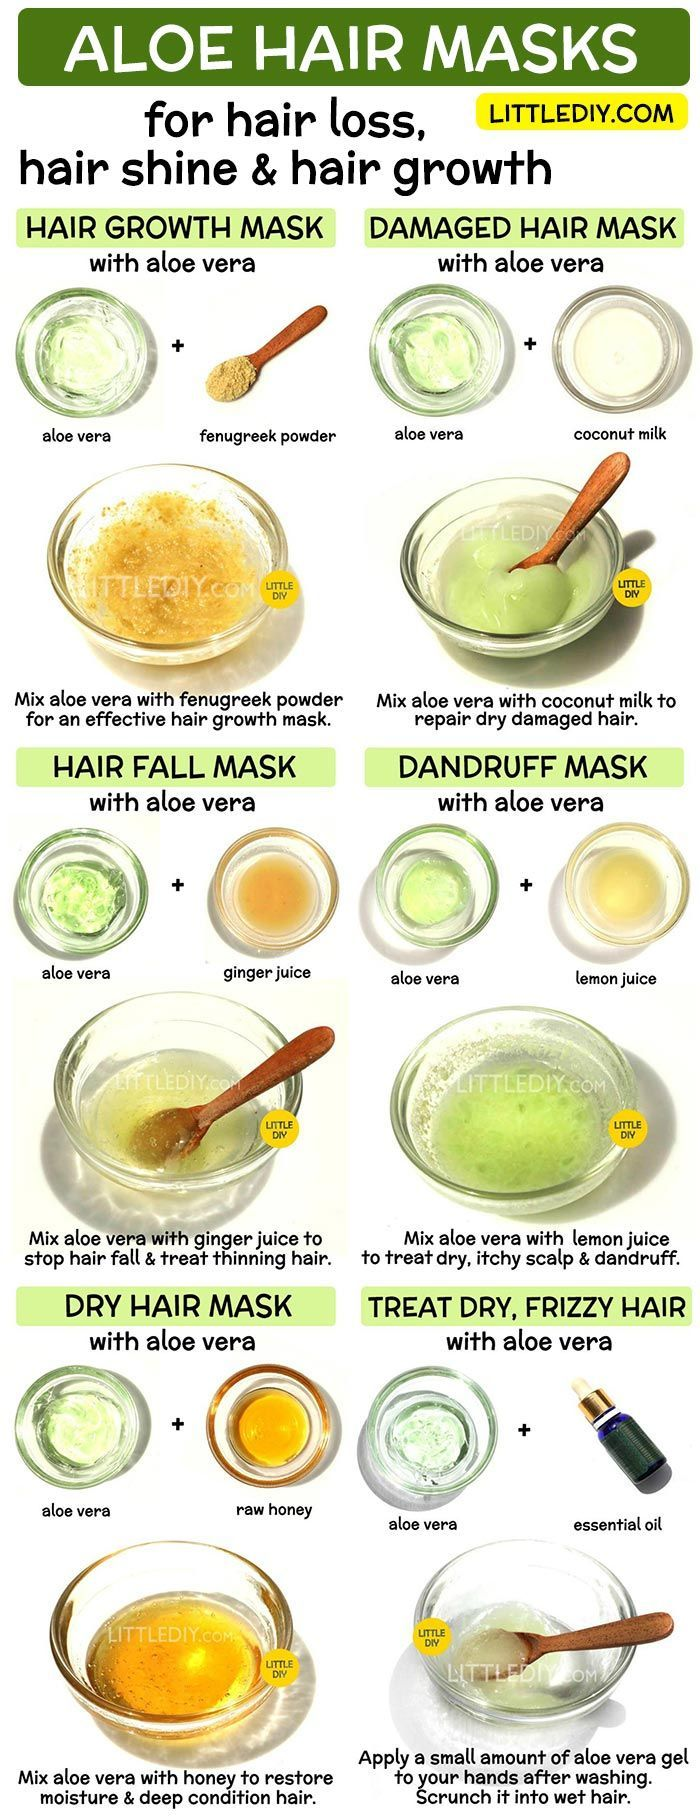 ALOE VERA HAARMASKEN für Haarwuchs, Haarausfall und Glanz - LITTLE DIY   - Skin Care and beau...